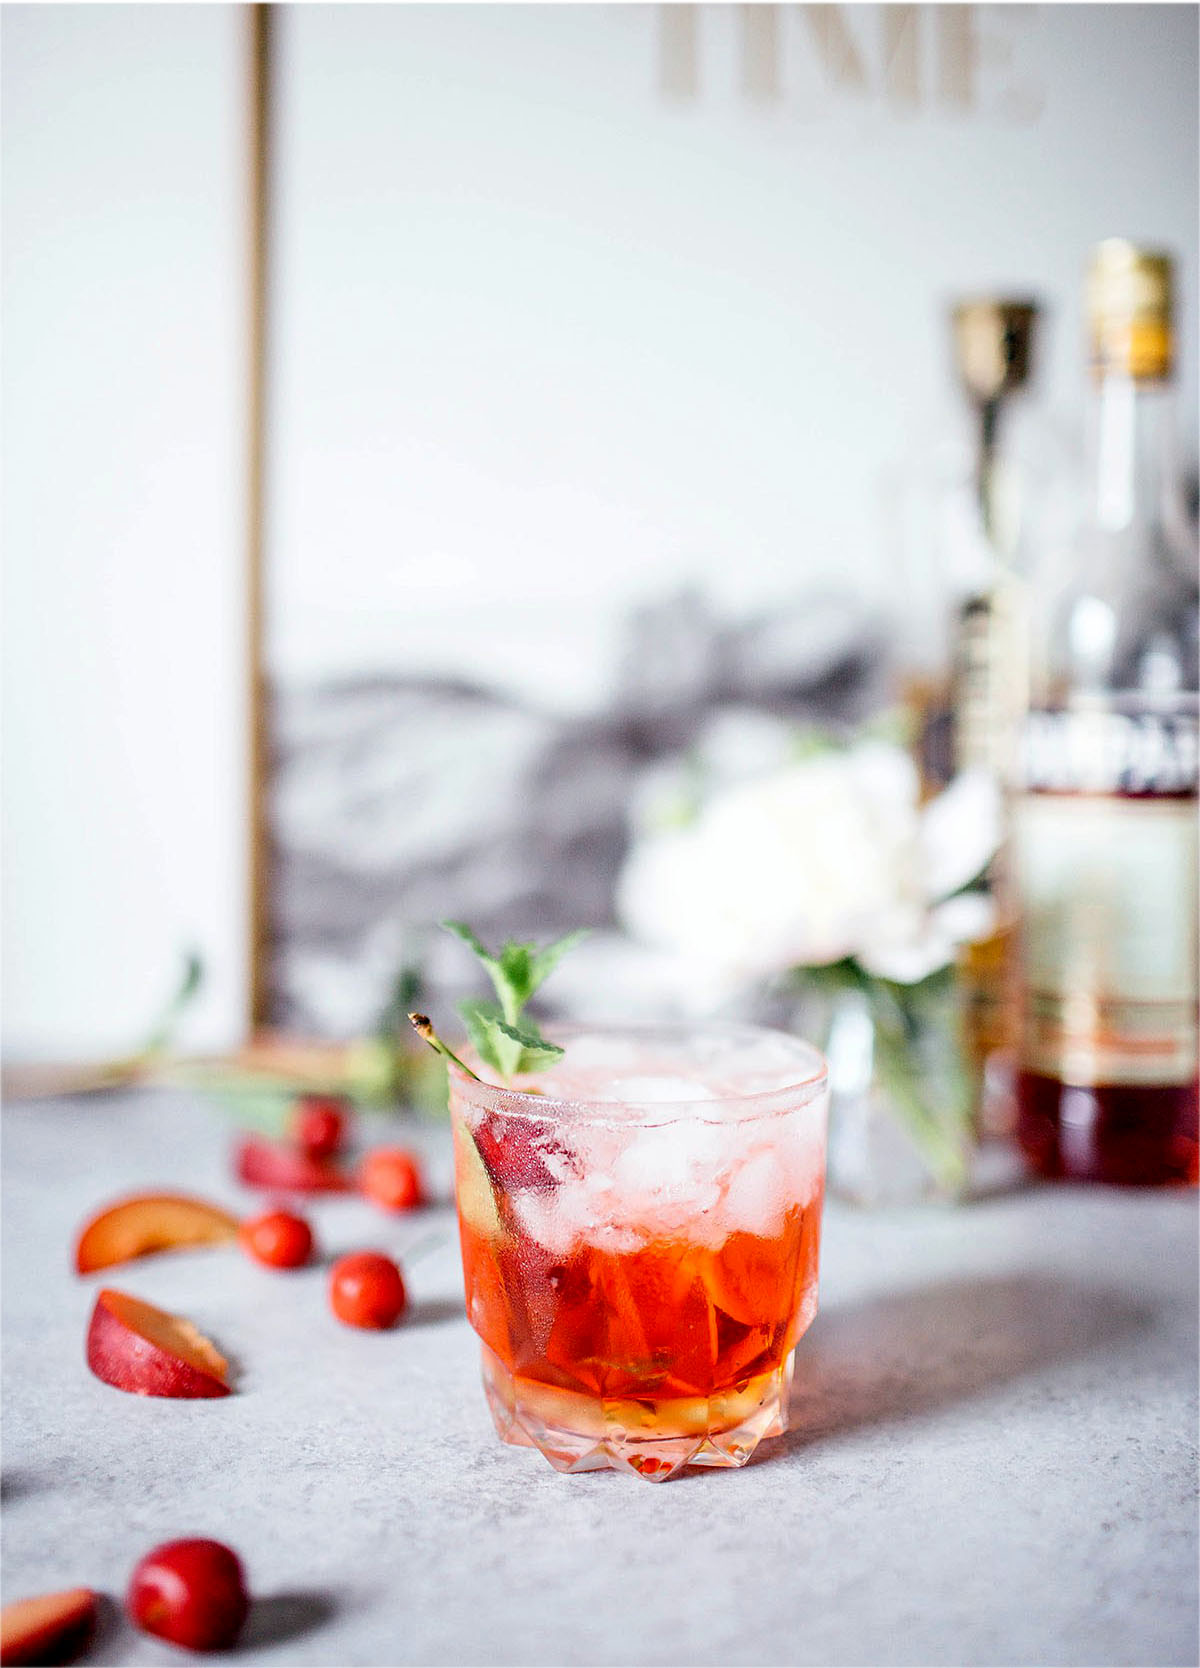 St. Germain Spritz garnished with cherries and fresh mint